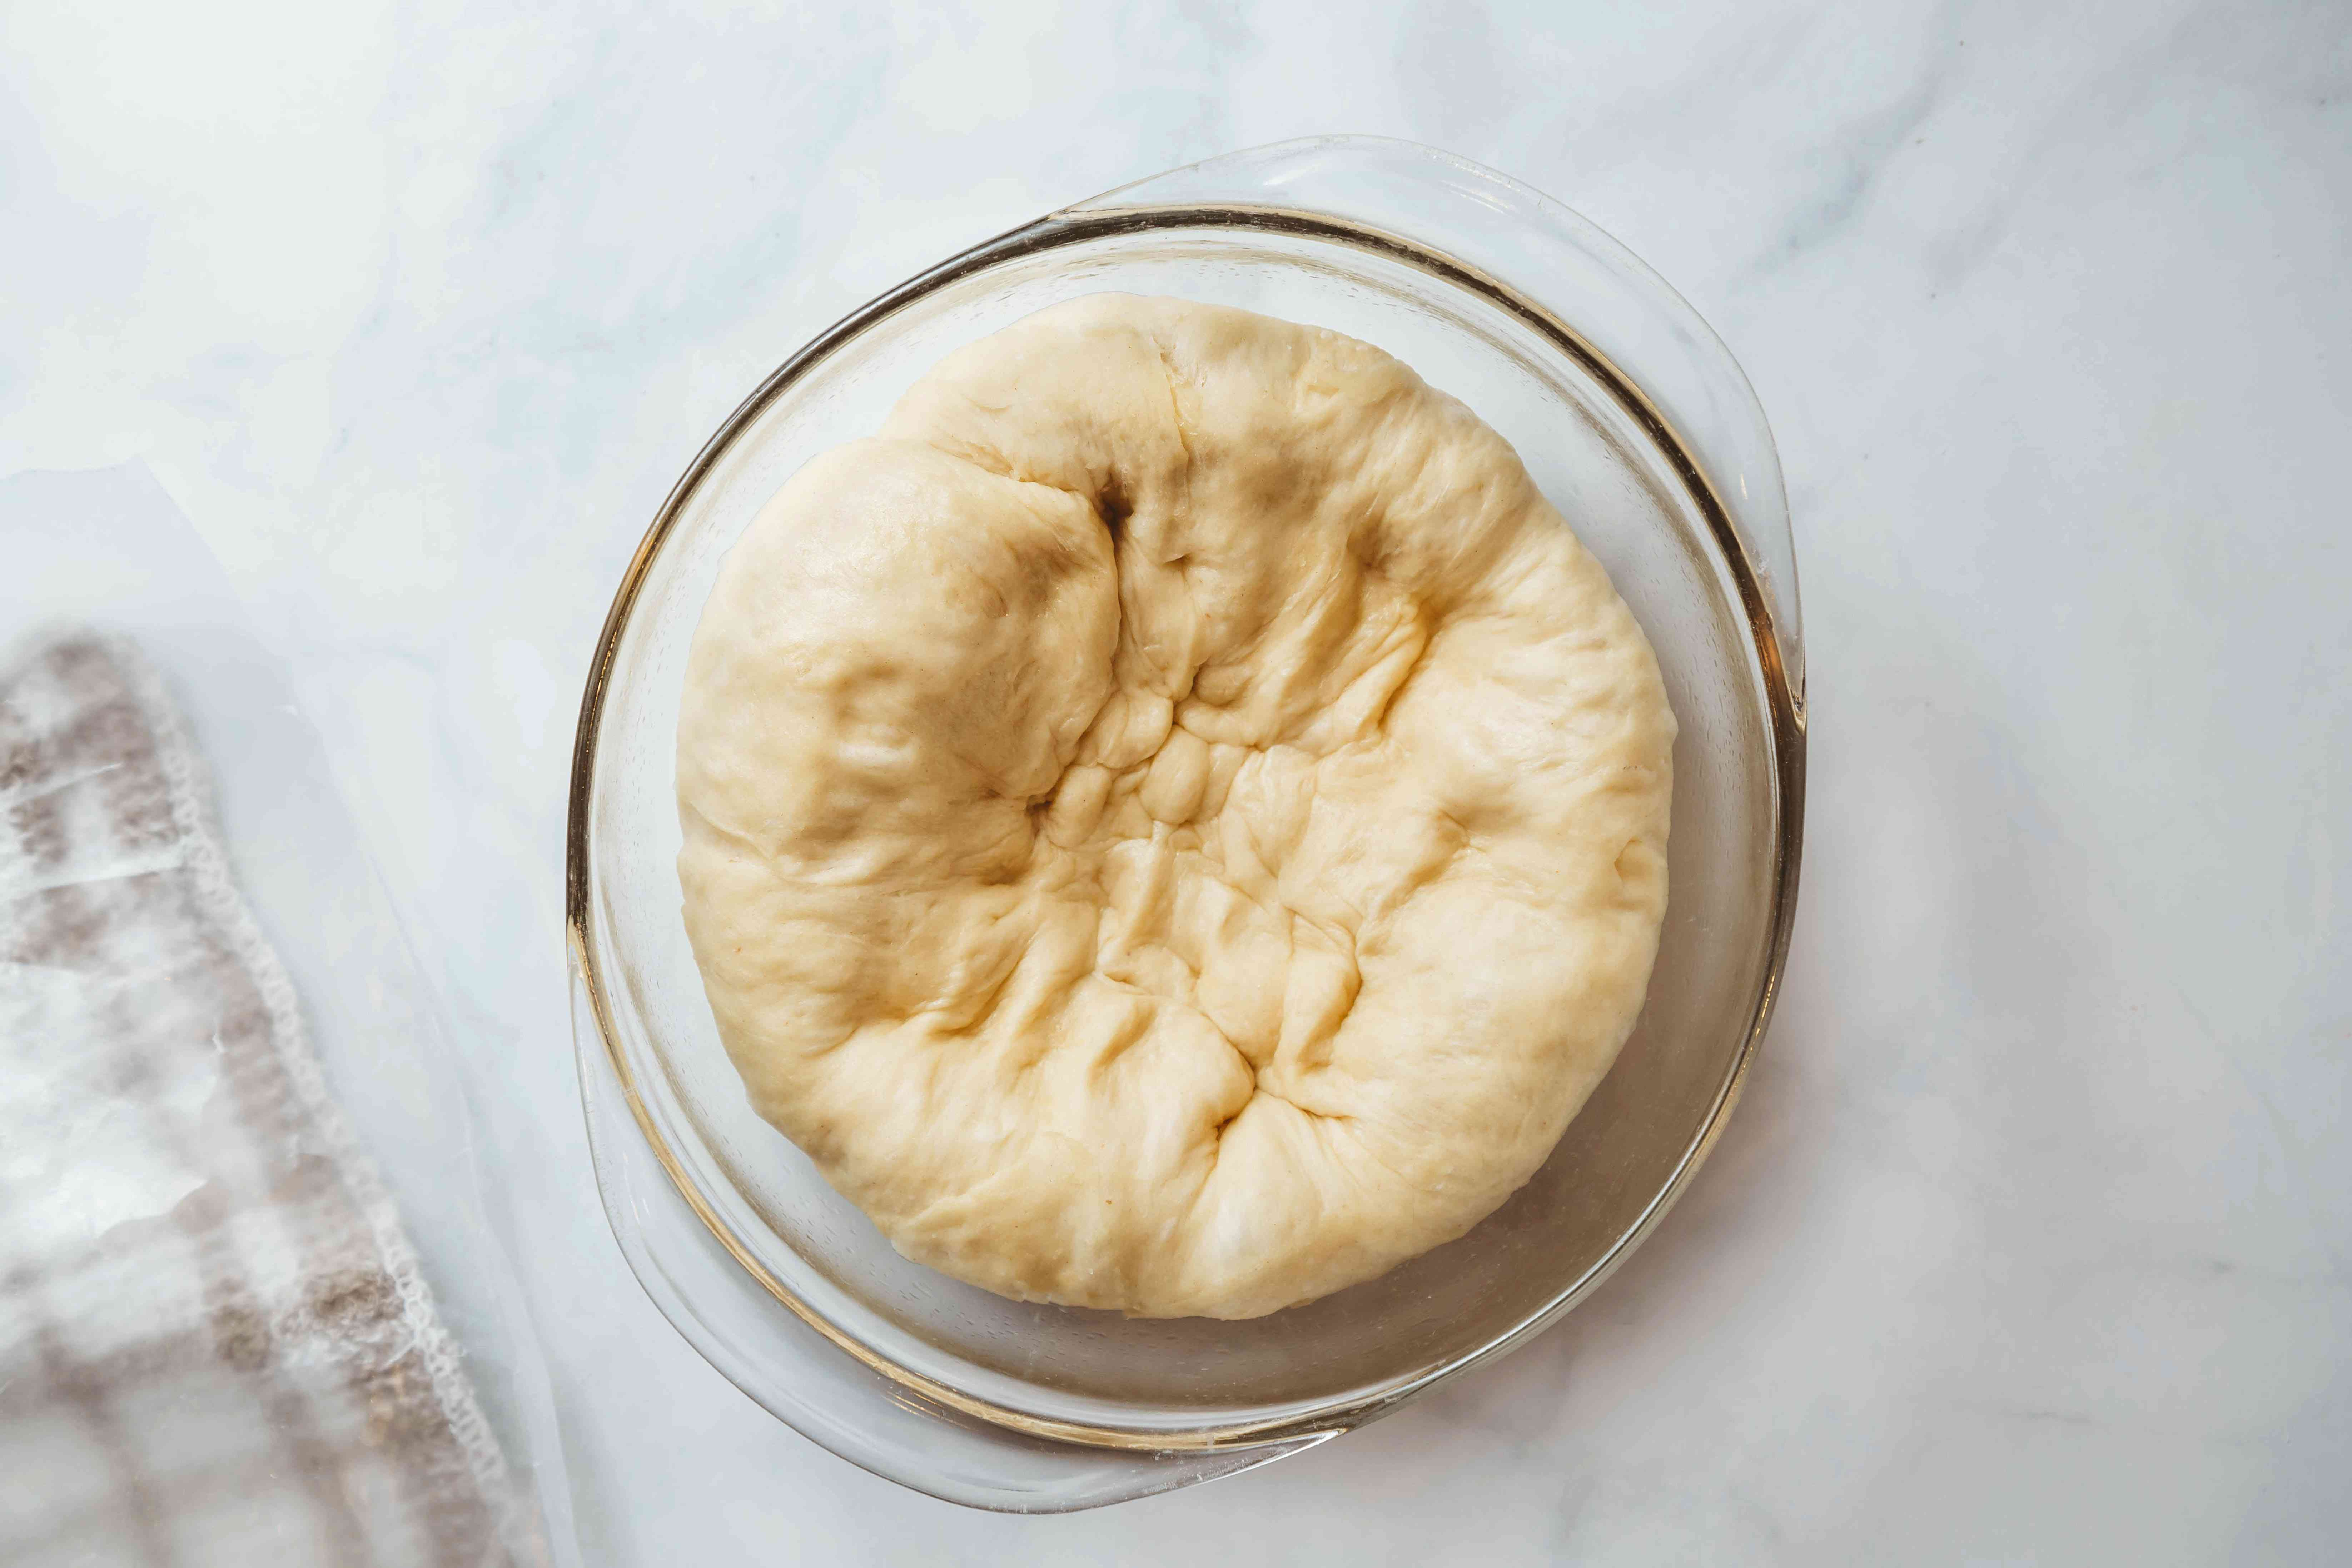 Punch down the dough